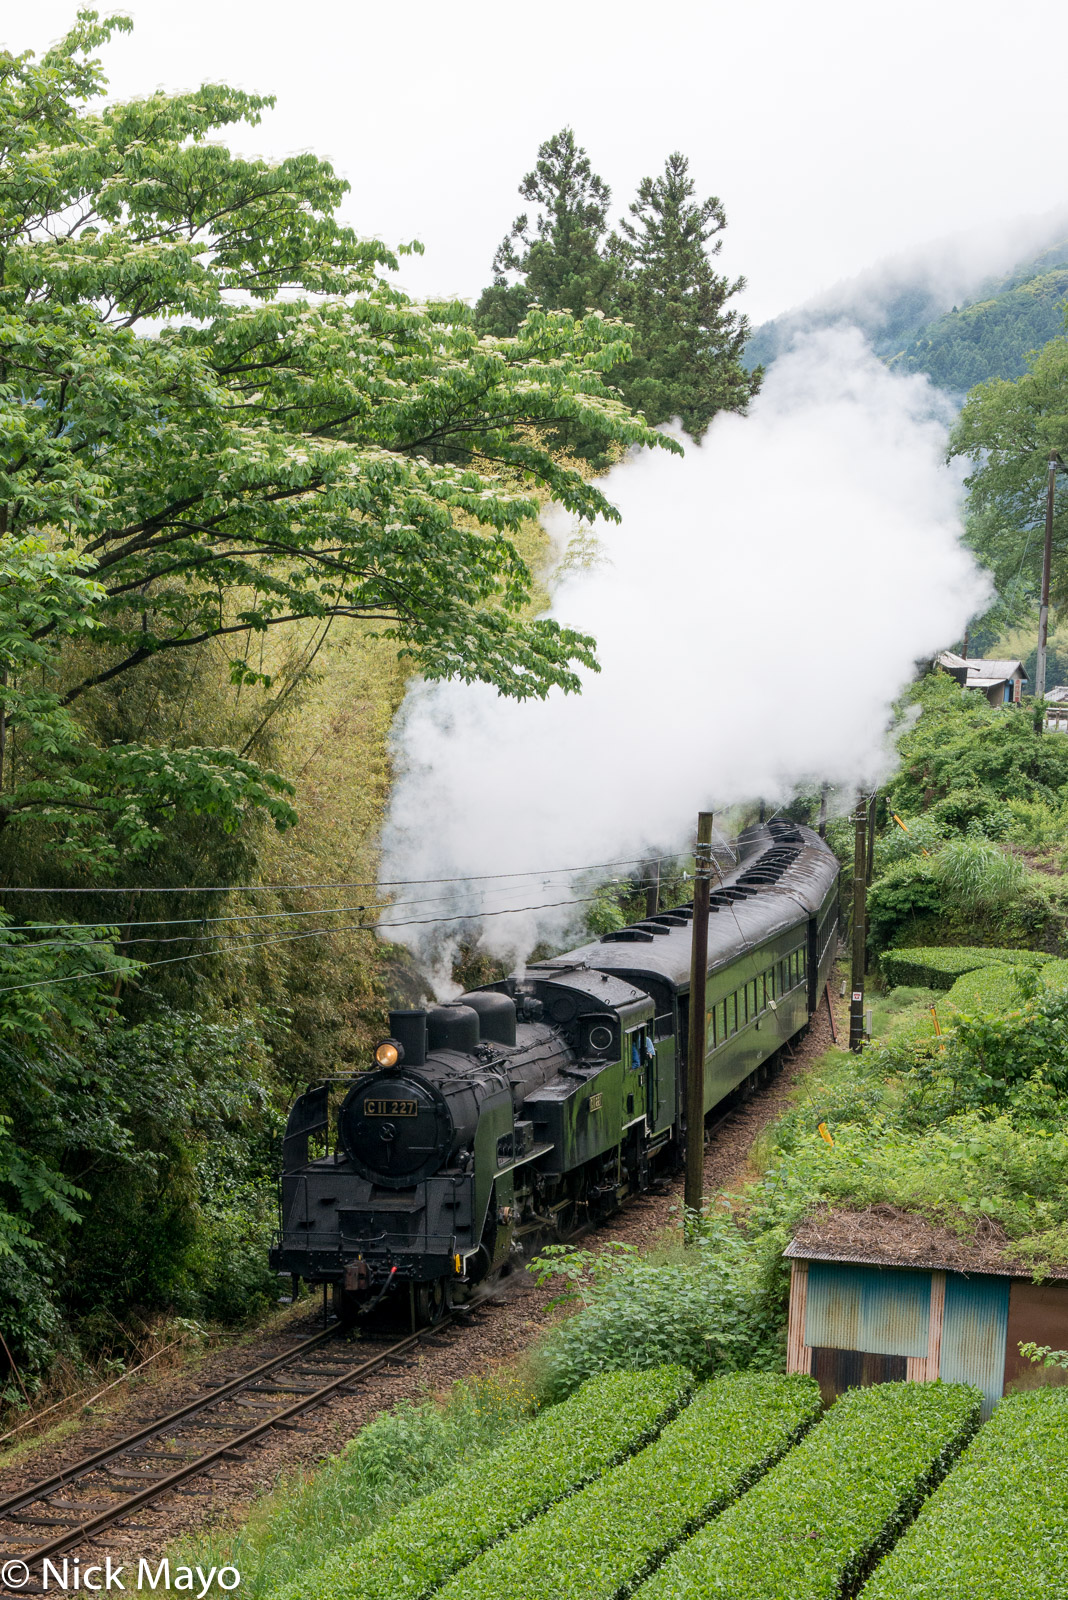 Japan, Kanto, Train, photo